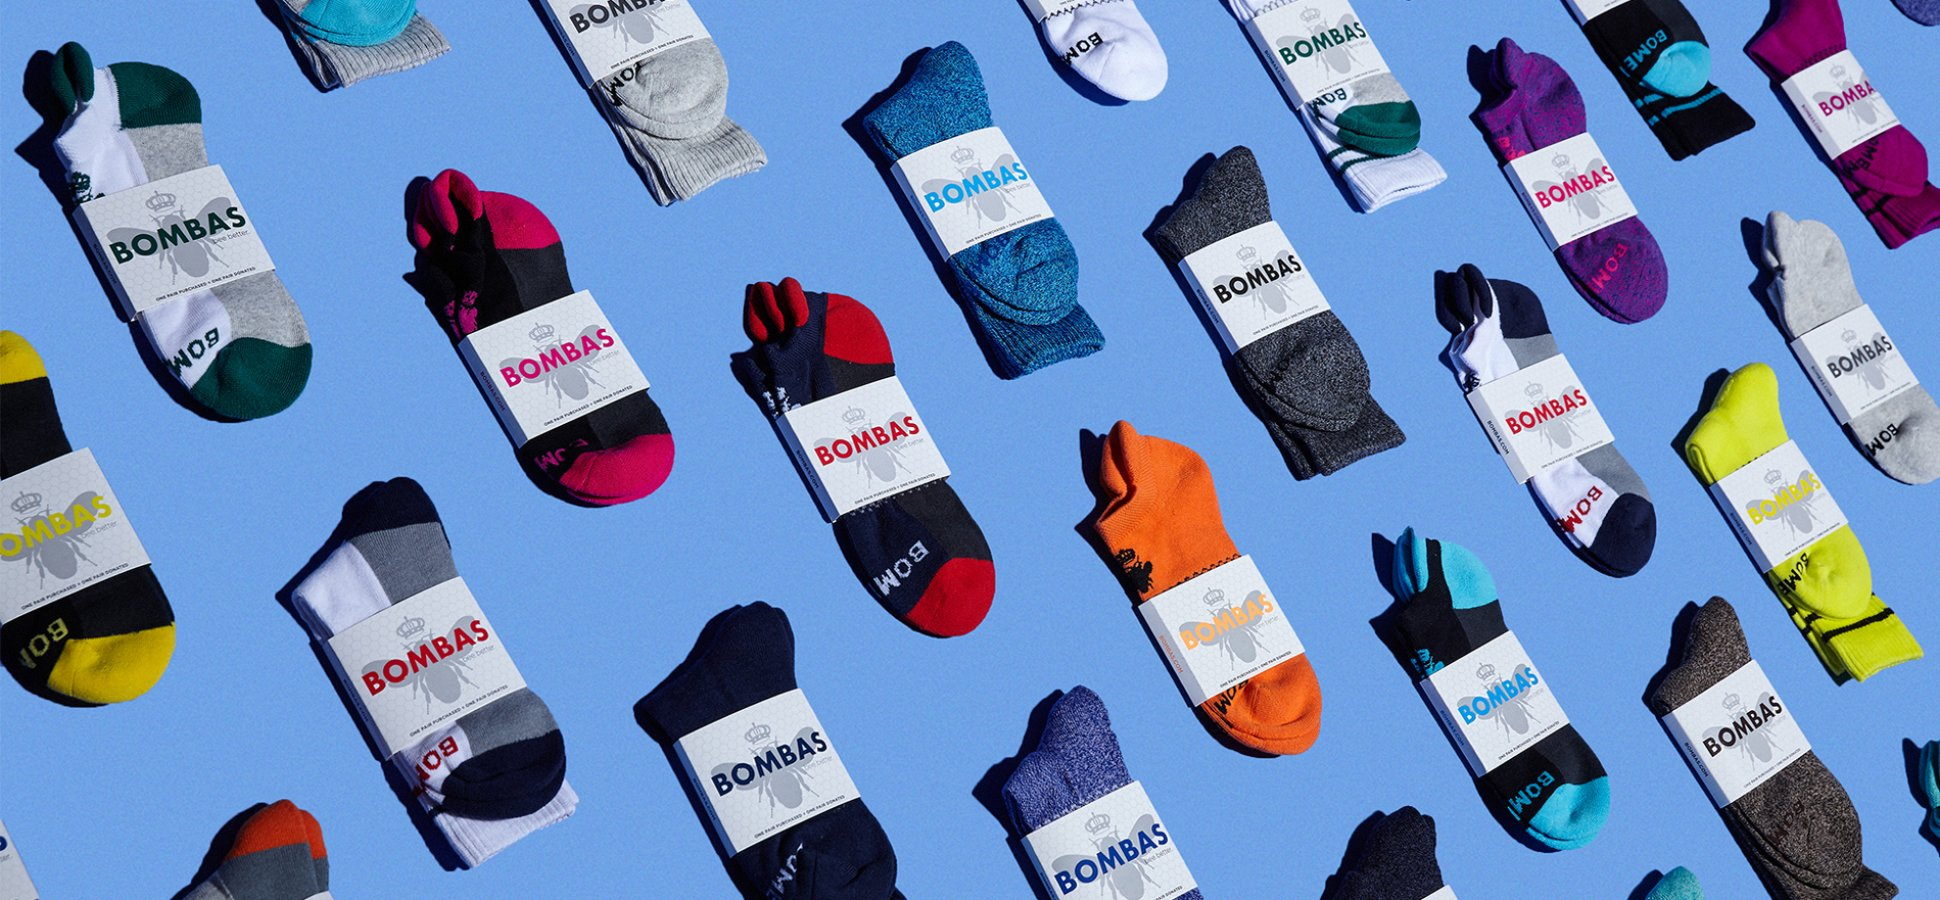 7 Great Holiday Gifts Under $100 for Your Favorite Millennial